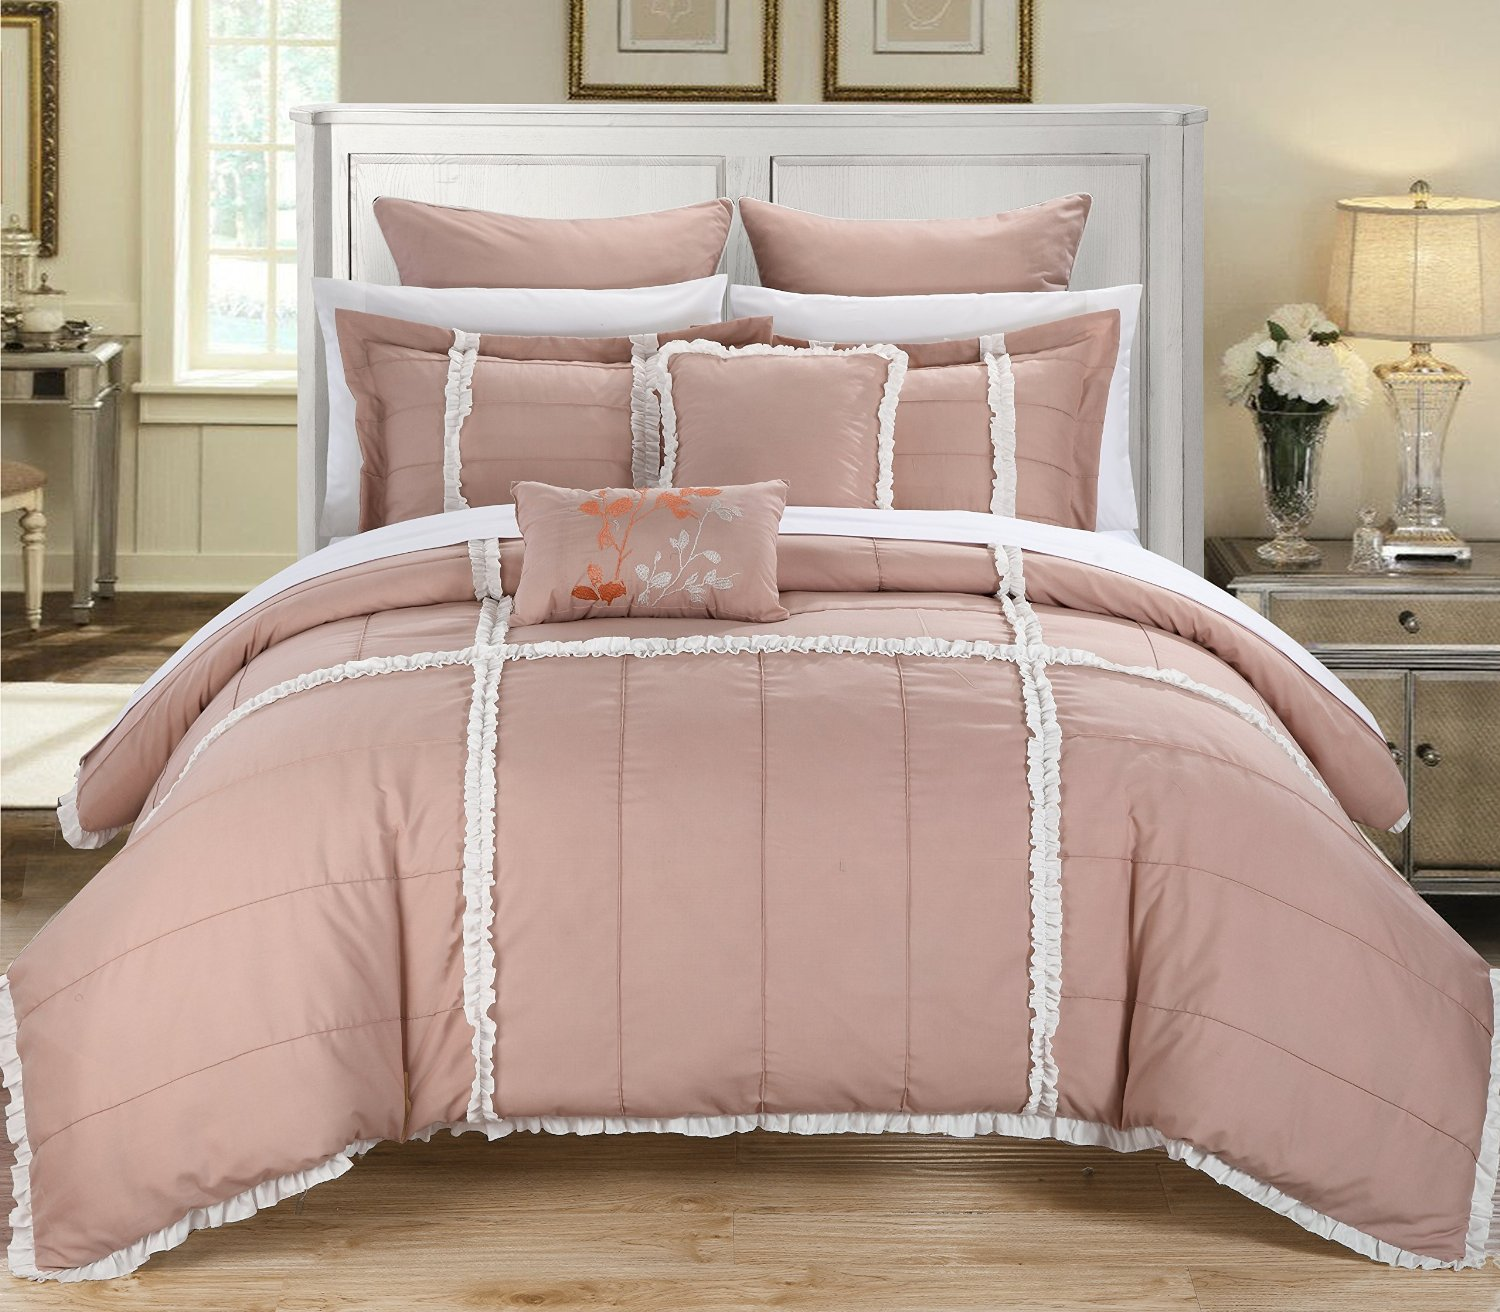 legends store royal baffled comforters res hi company luxury comforter the